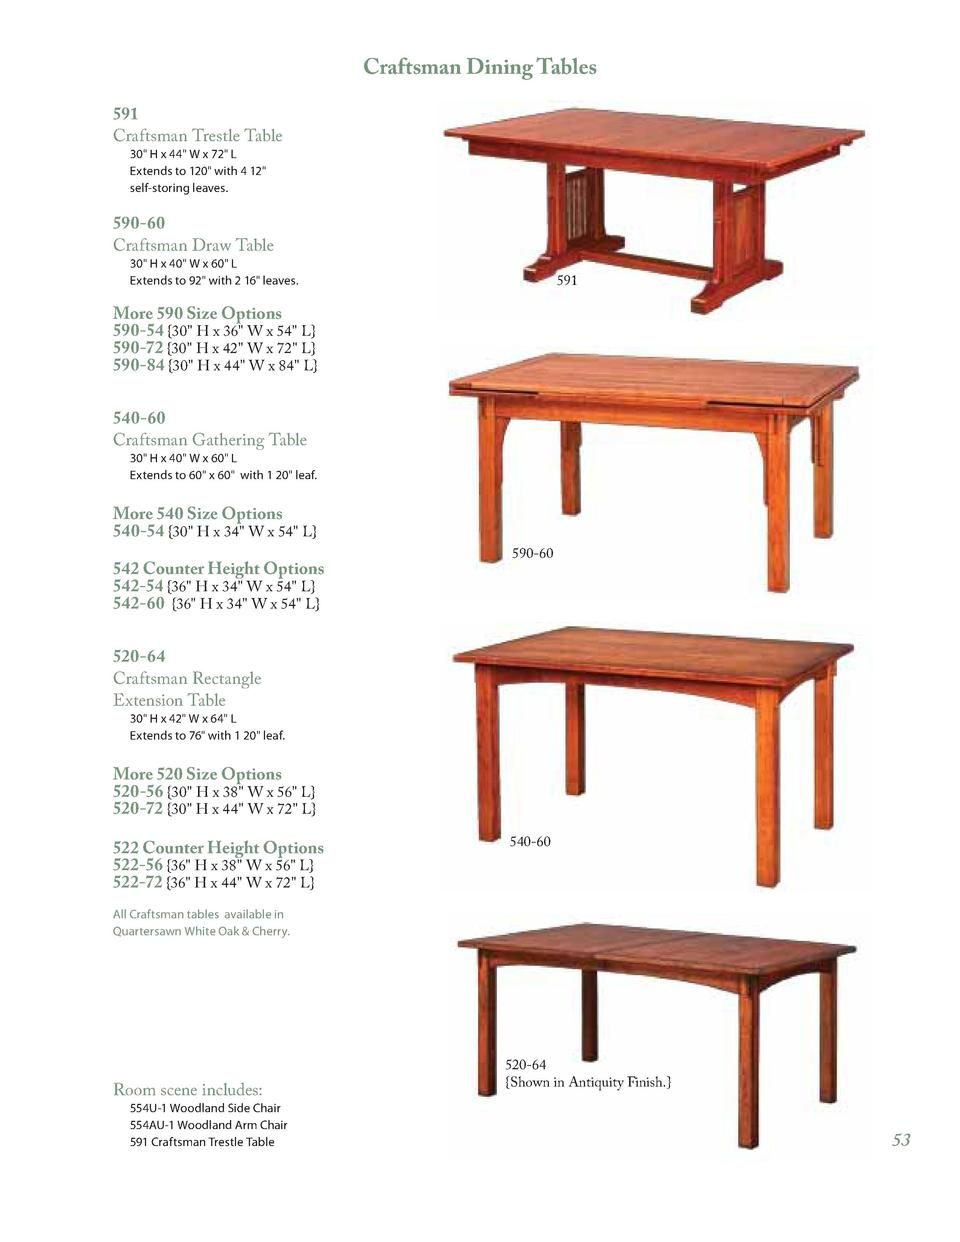 Craftsman Dining Tables 591 Craftsman Trestle Table 30 H X 44 W X 72 L  Extends